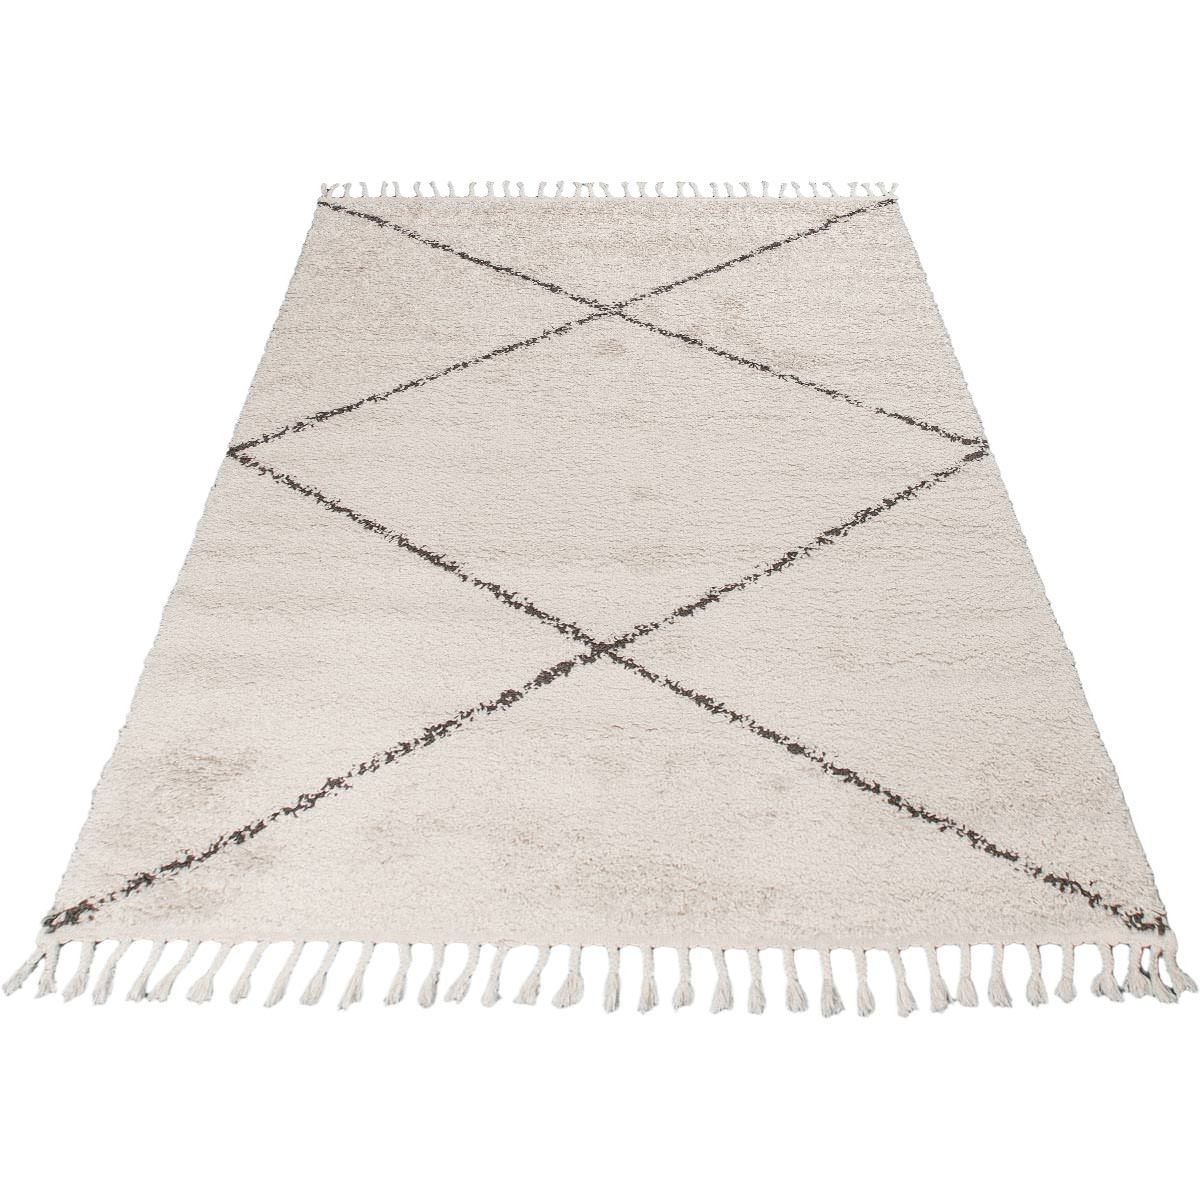 Shaggy Marrakech Rug 05 Cream/Black 6